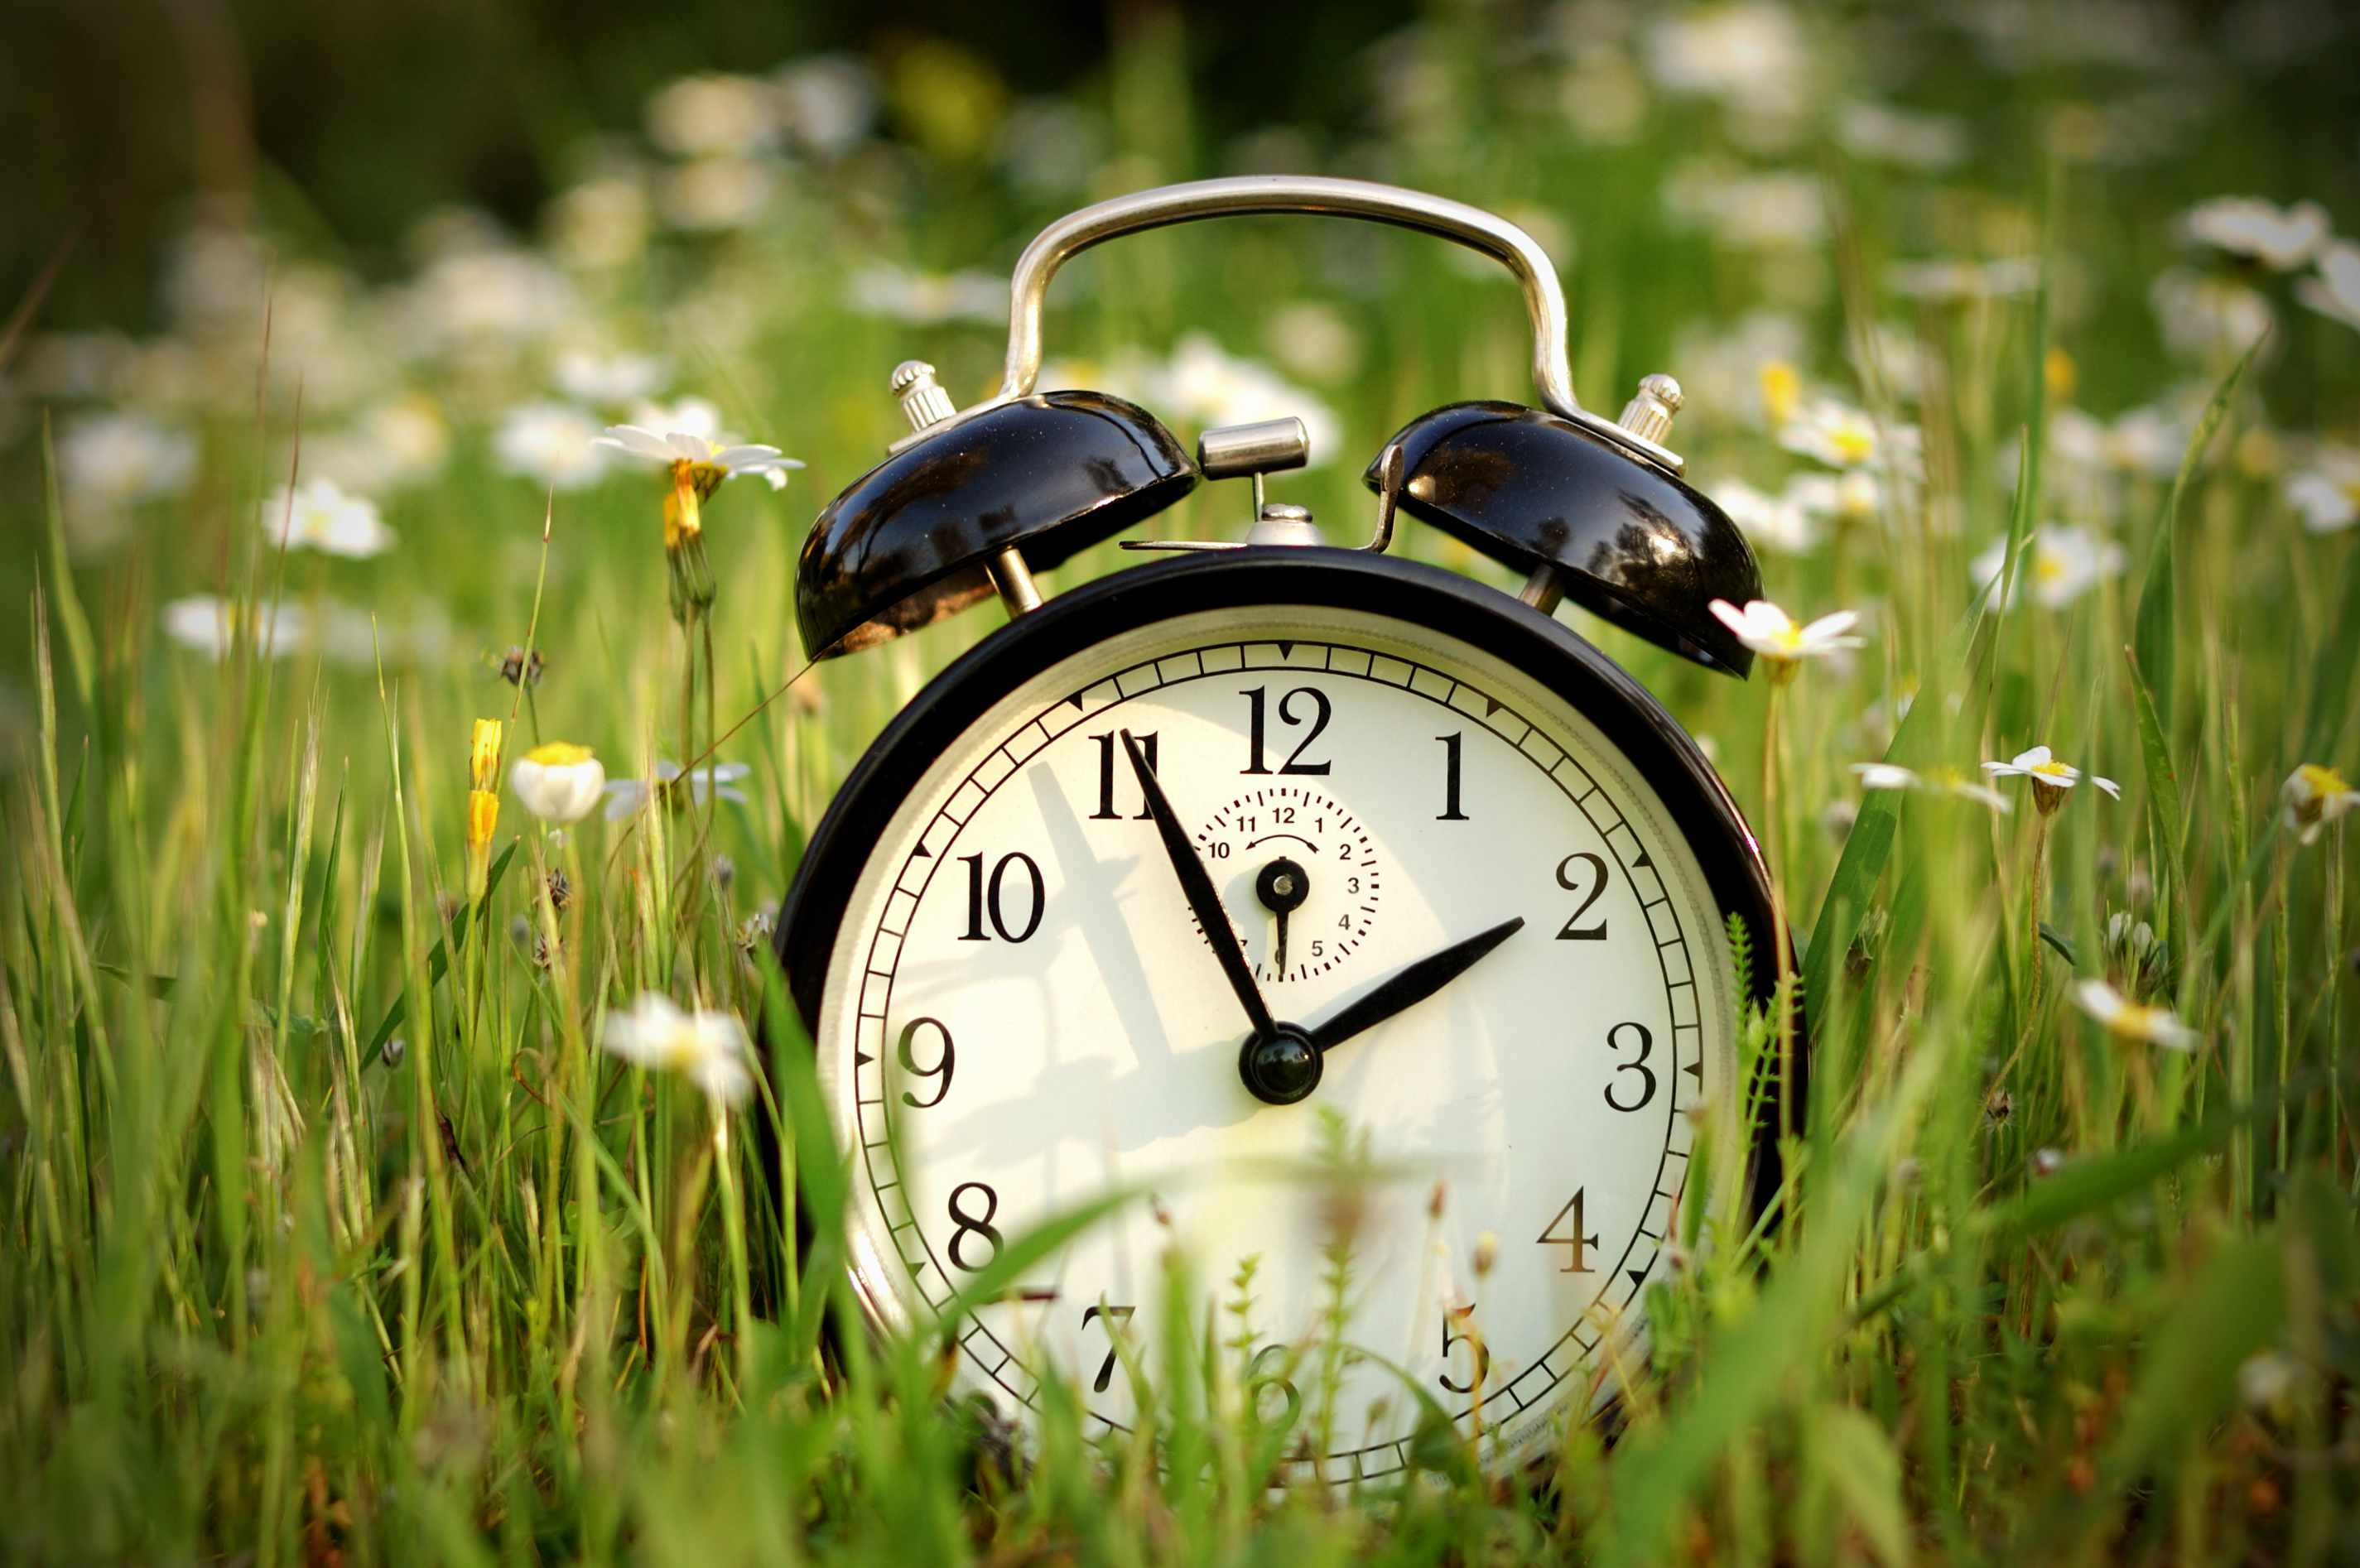 Changing clocks in spring